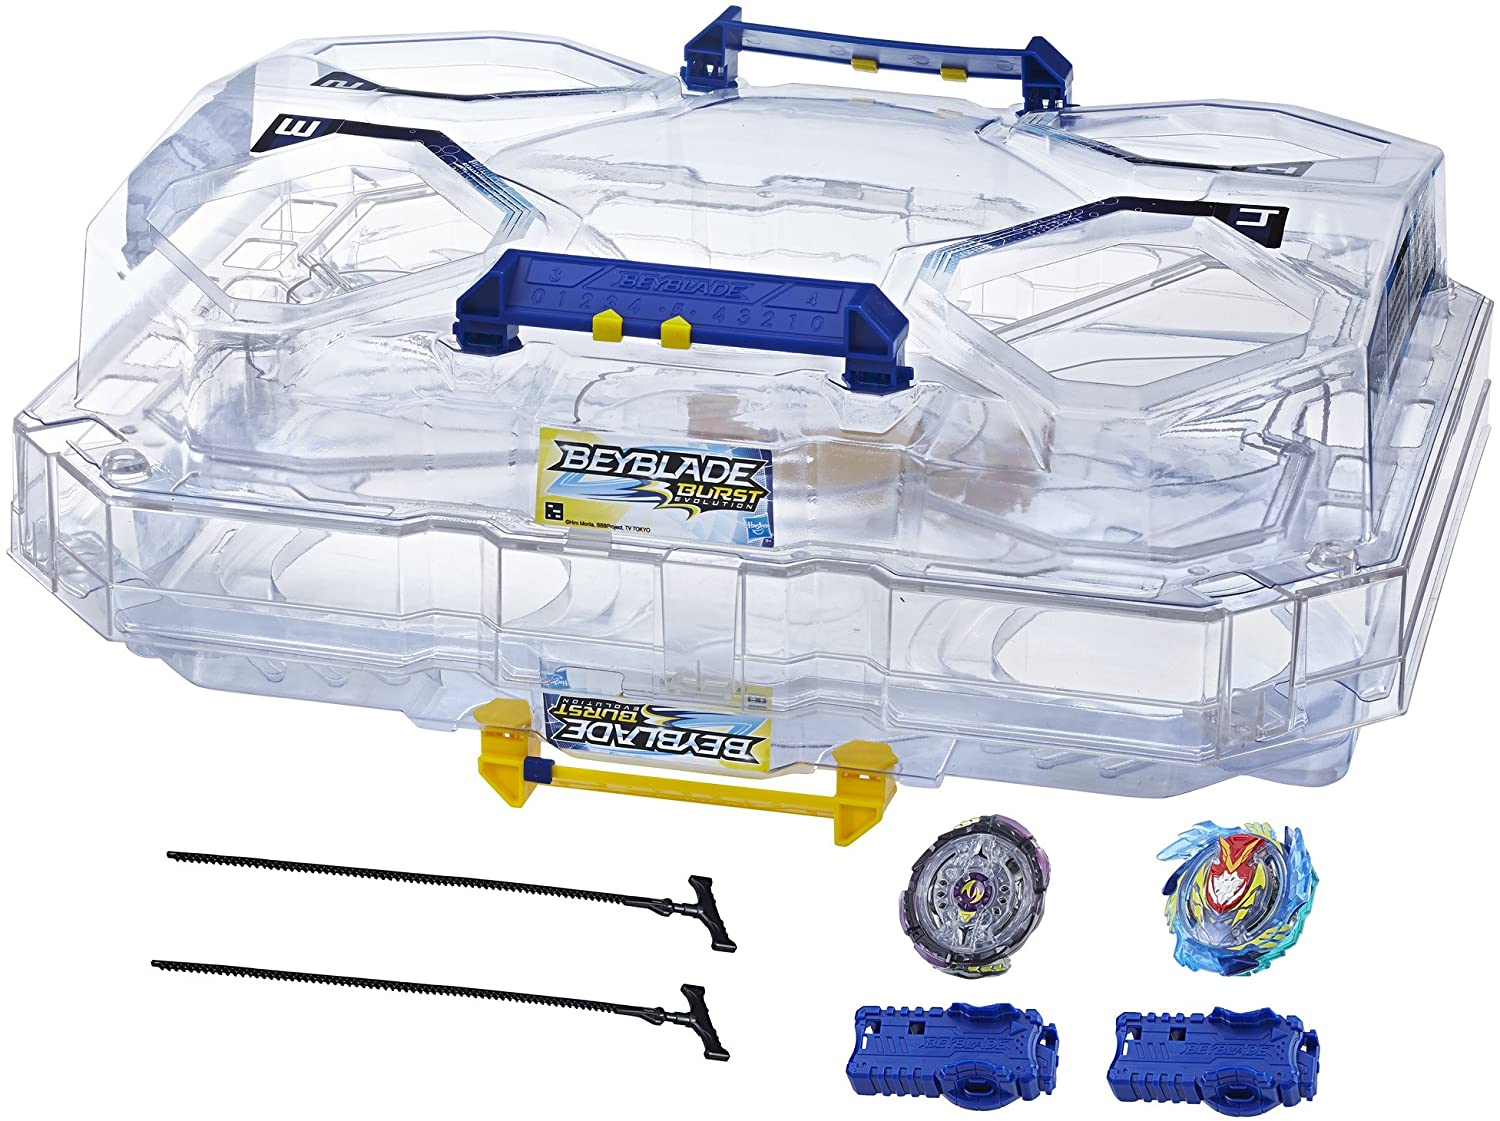 Beyblade Burst Evolution New arrival Switchstrike Tower-Includes Manufacturer regenerated product 2-Le Battle